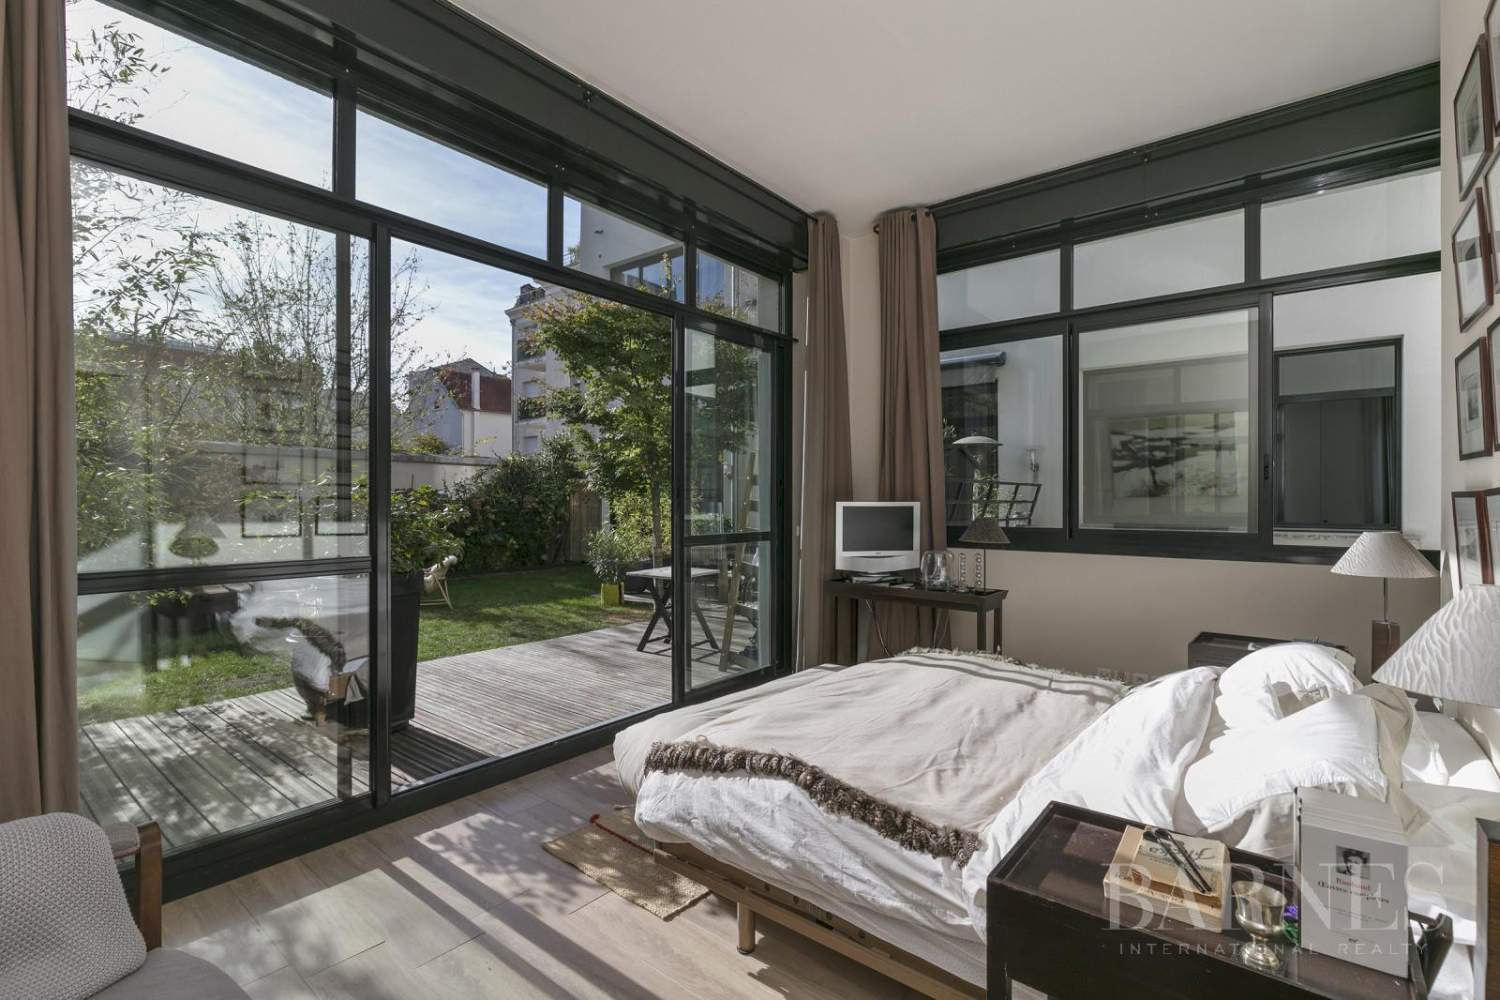 LA GARENNE COLOMBES LOFT APARTMENT WITH GARDEN AND TERRACE picture 3